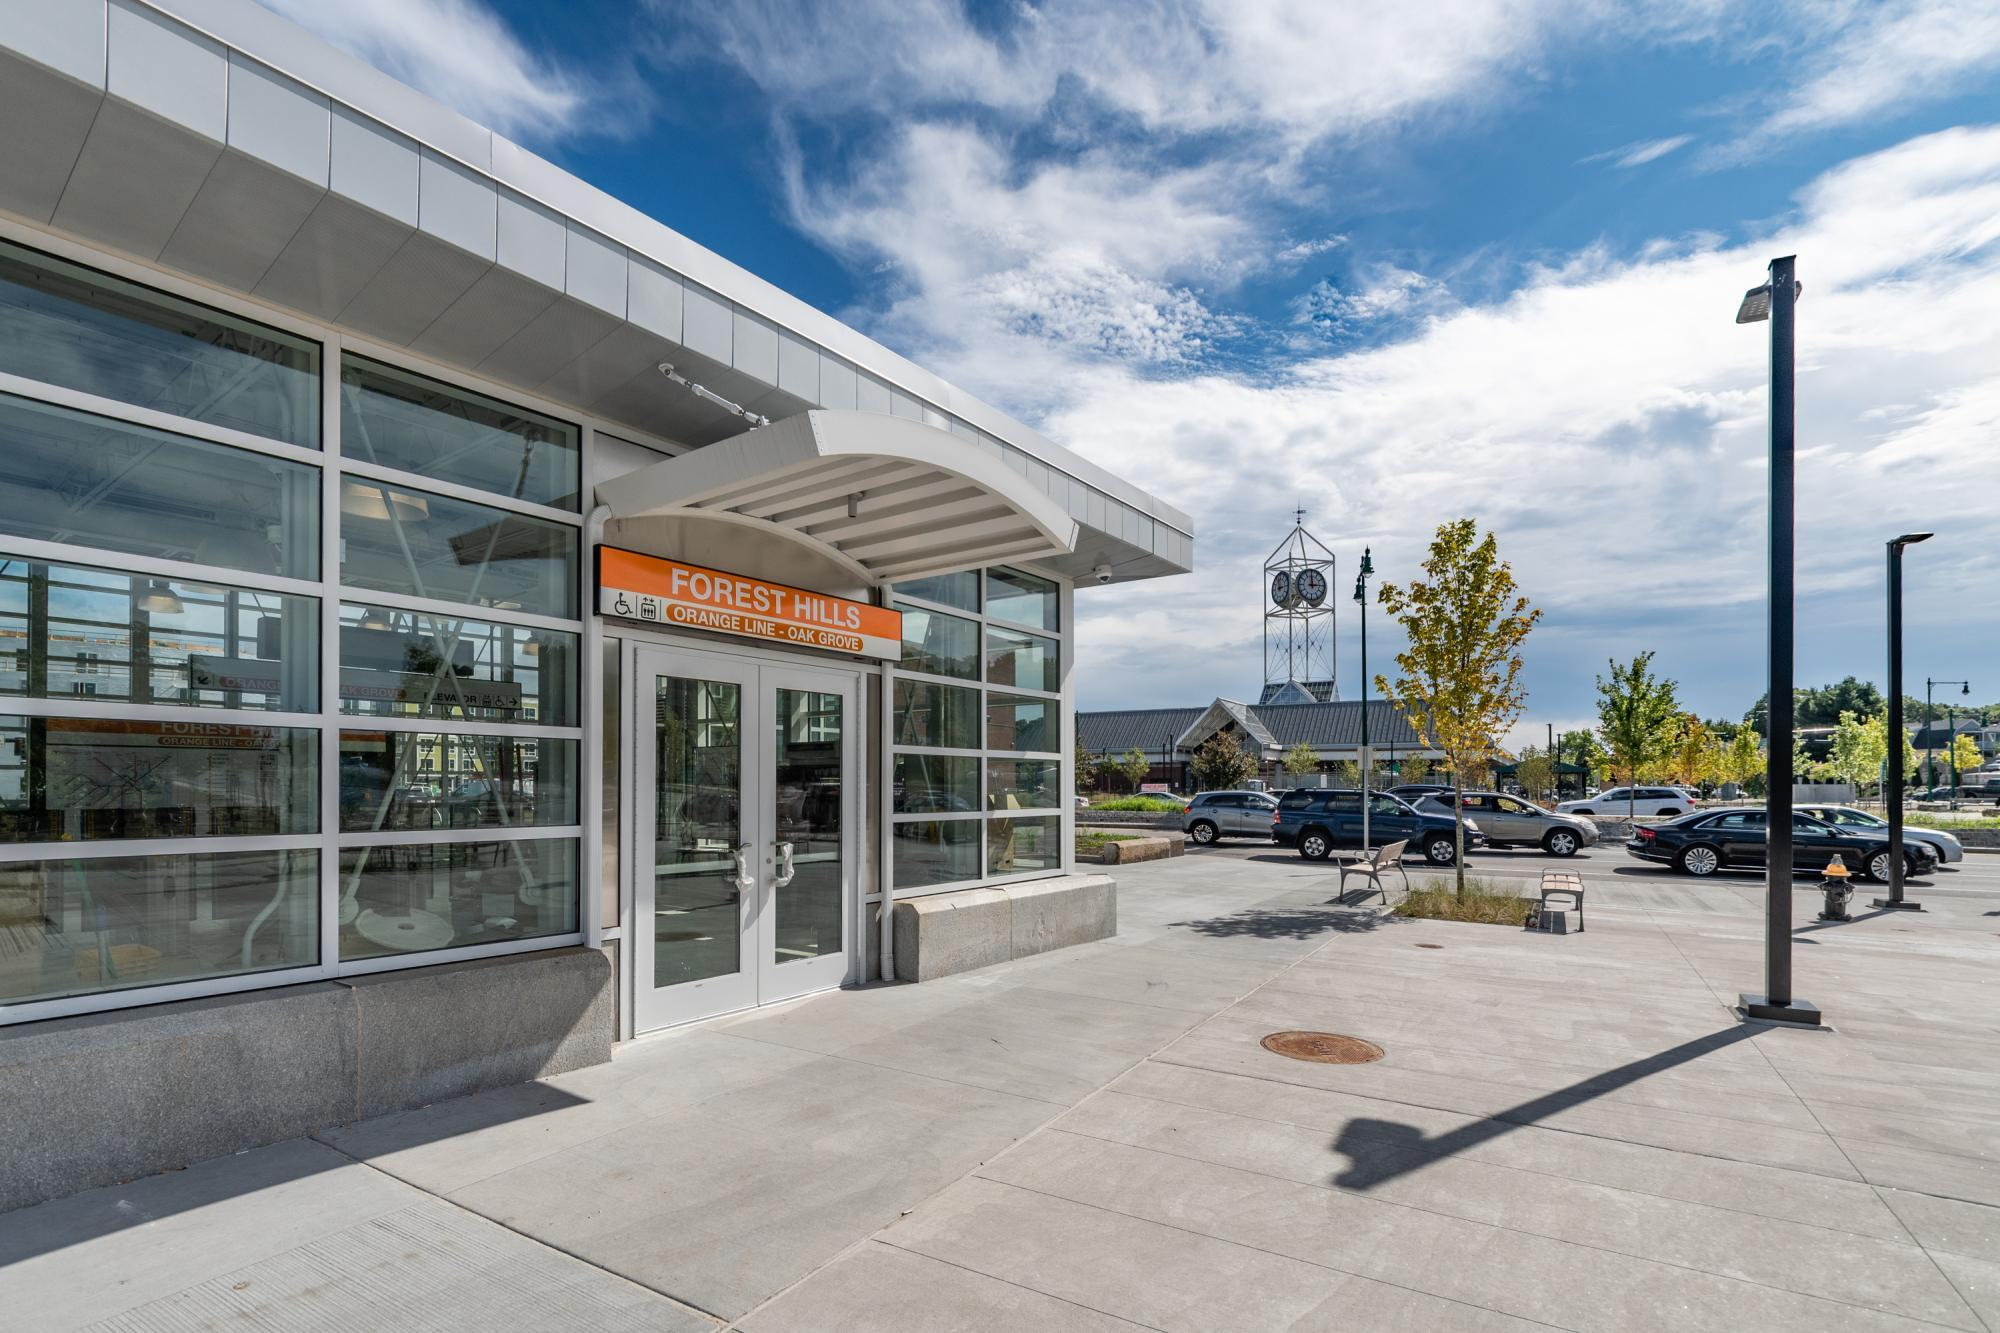 A new, fully accessible entrance to the Orange Line platform at Forest Hills opened in October 2019.